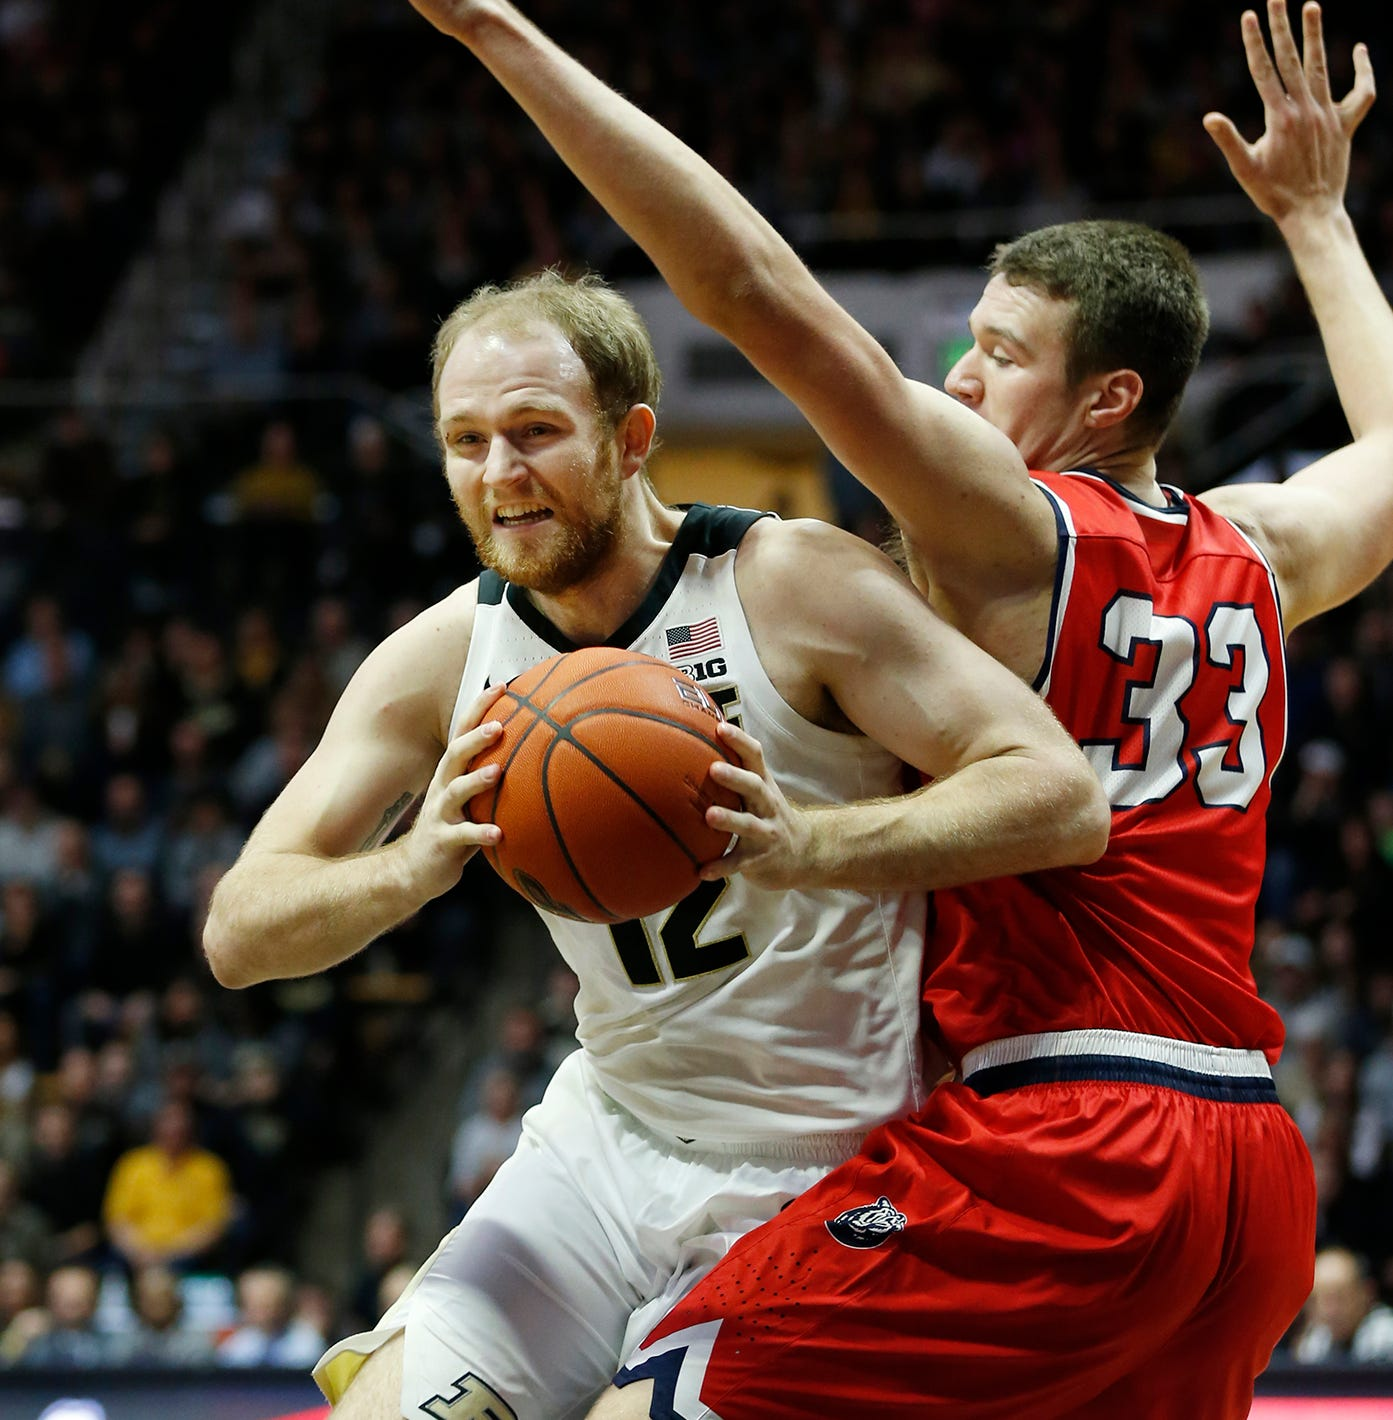 Purdue basketball's Evan Boudreaux took unexpected path to first NCAA Tournament